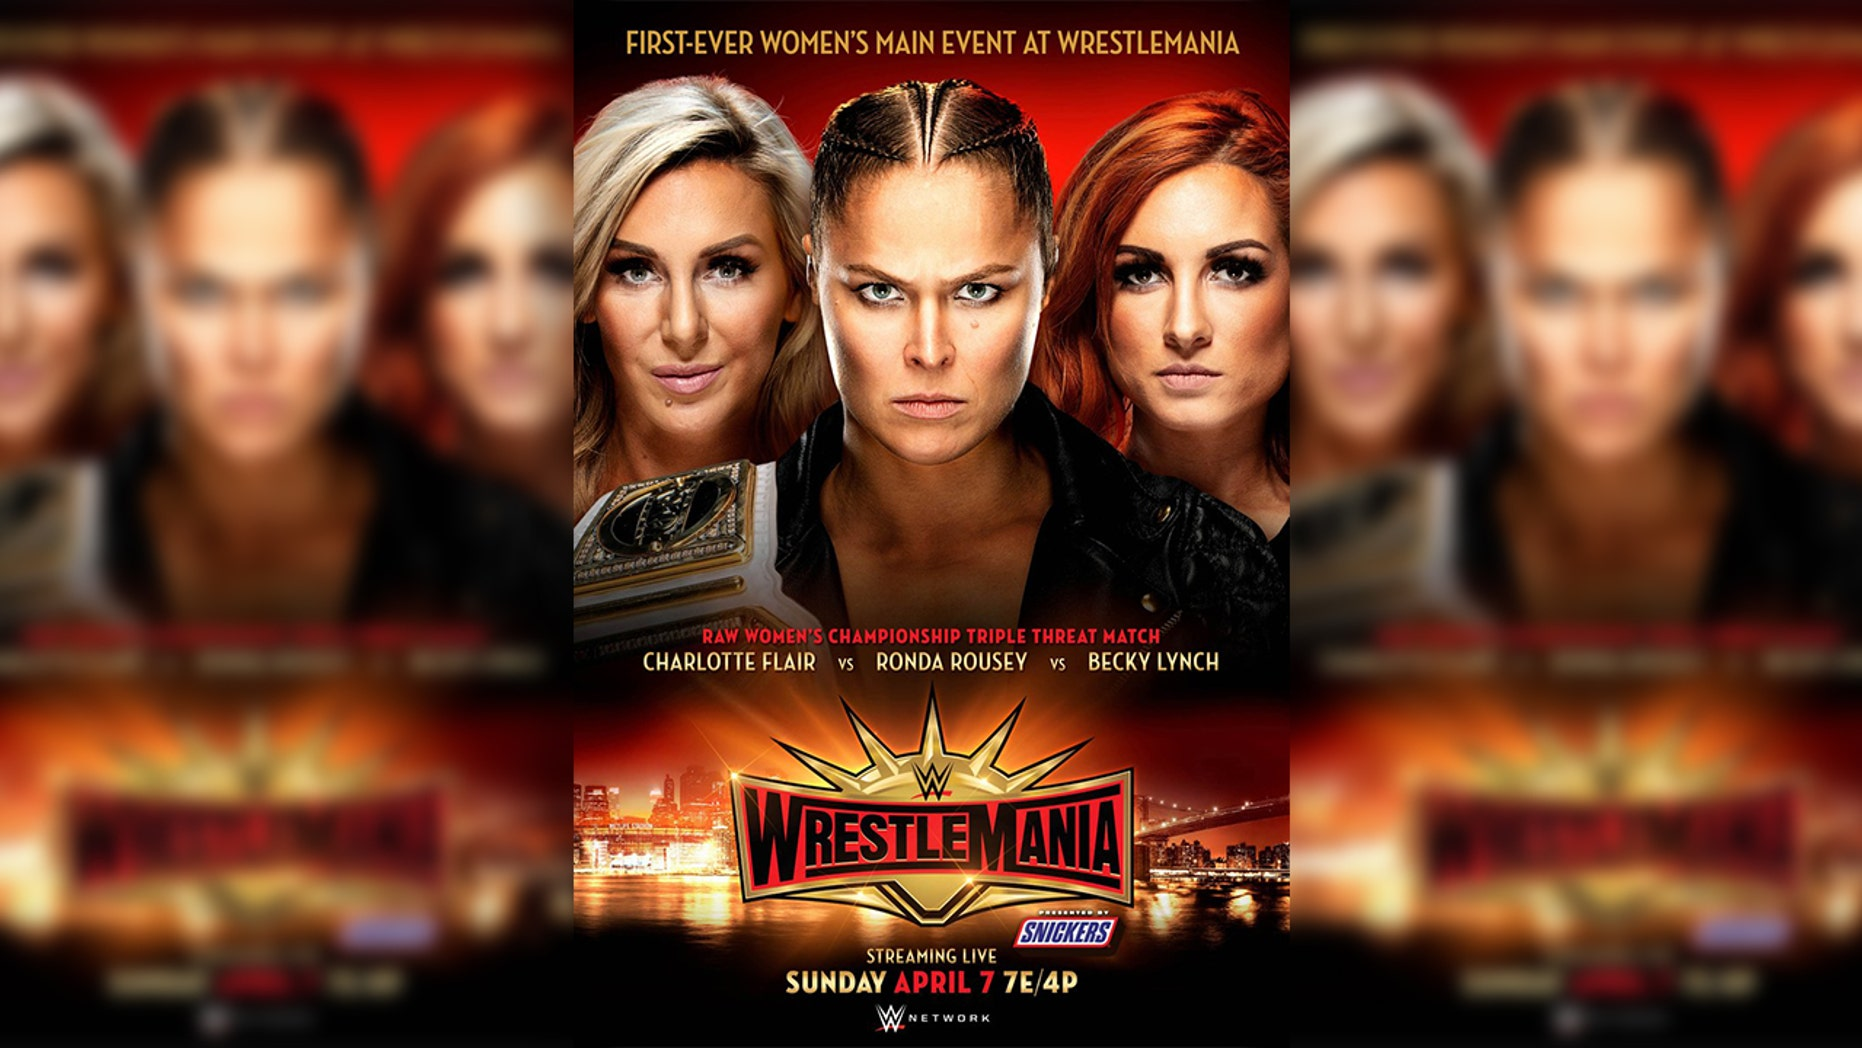 Ronda Rousey, Becky Lynch and Charlotte Flair will headline WrestleMania 35